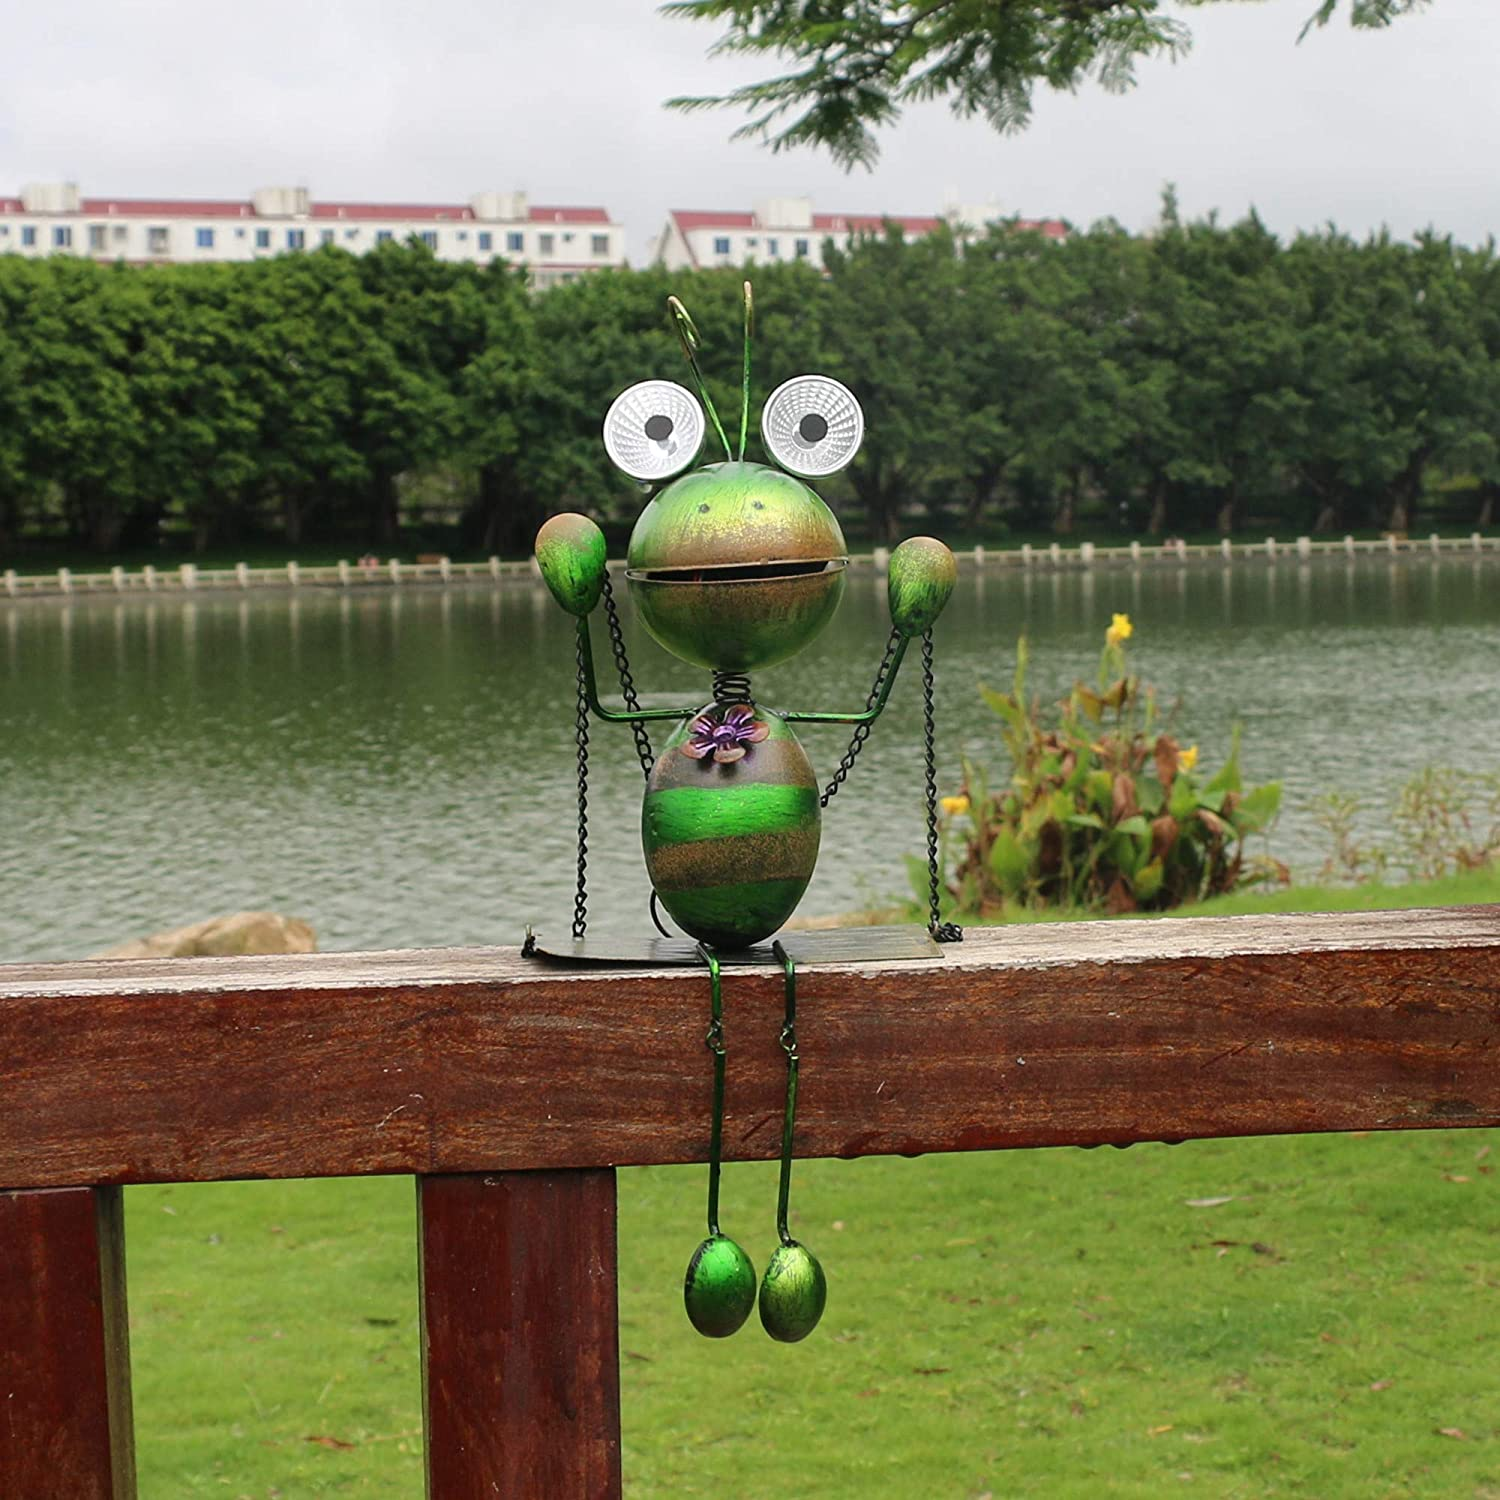 Outdoor Solar Lights - Metal ant Art Hanging Light, Courtyard, Indoor, Lawn, Garden Decoration